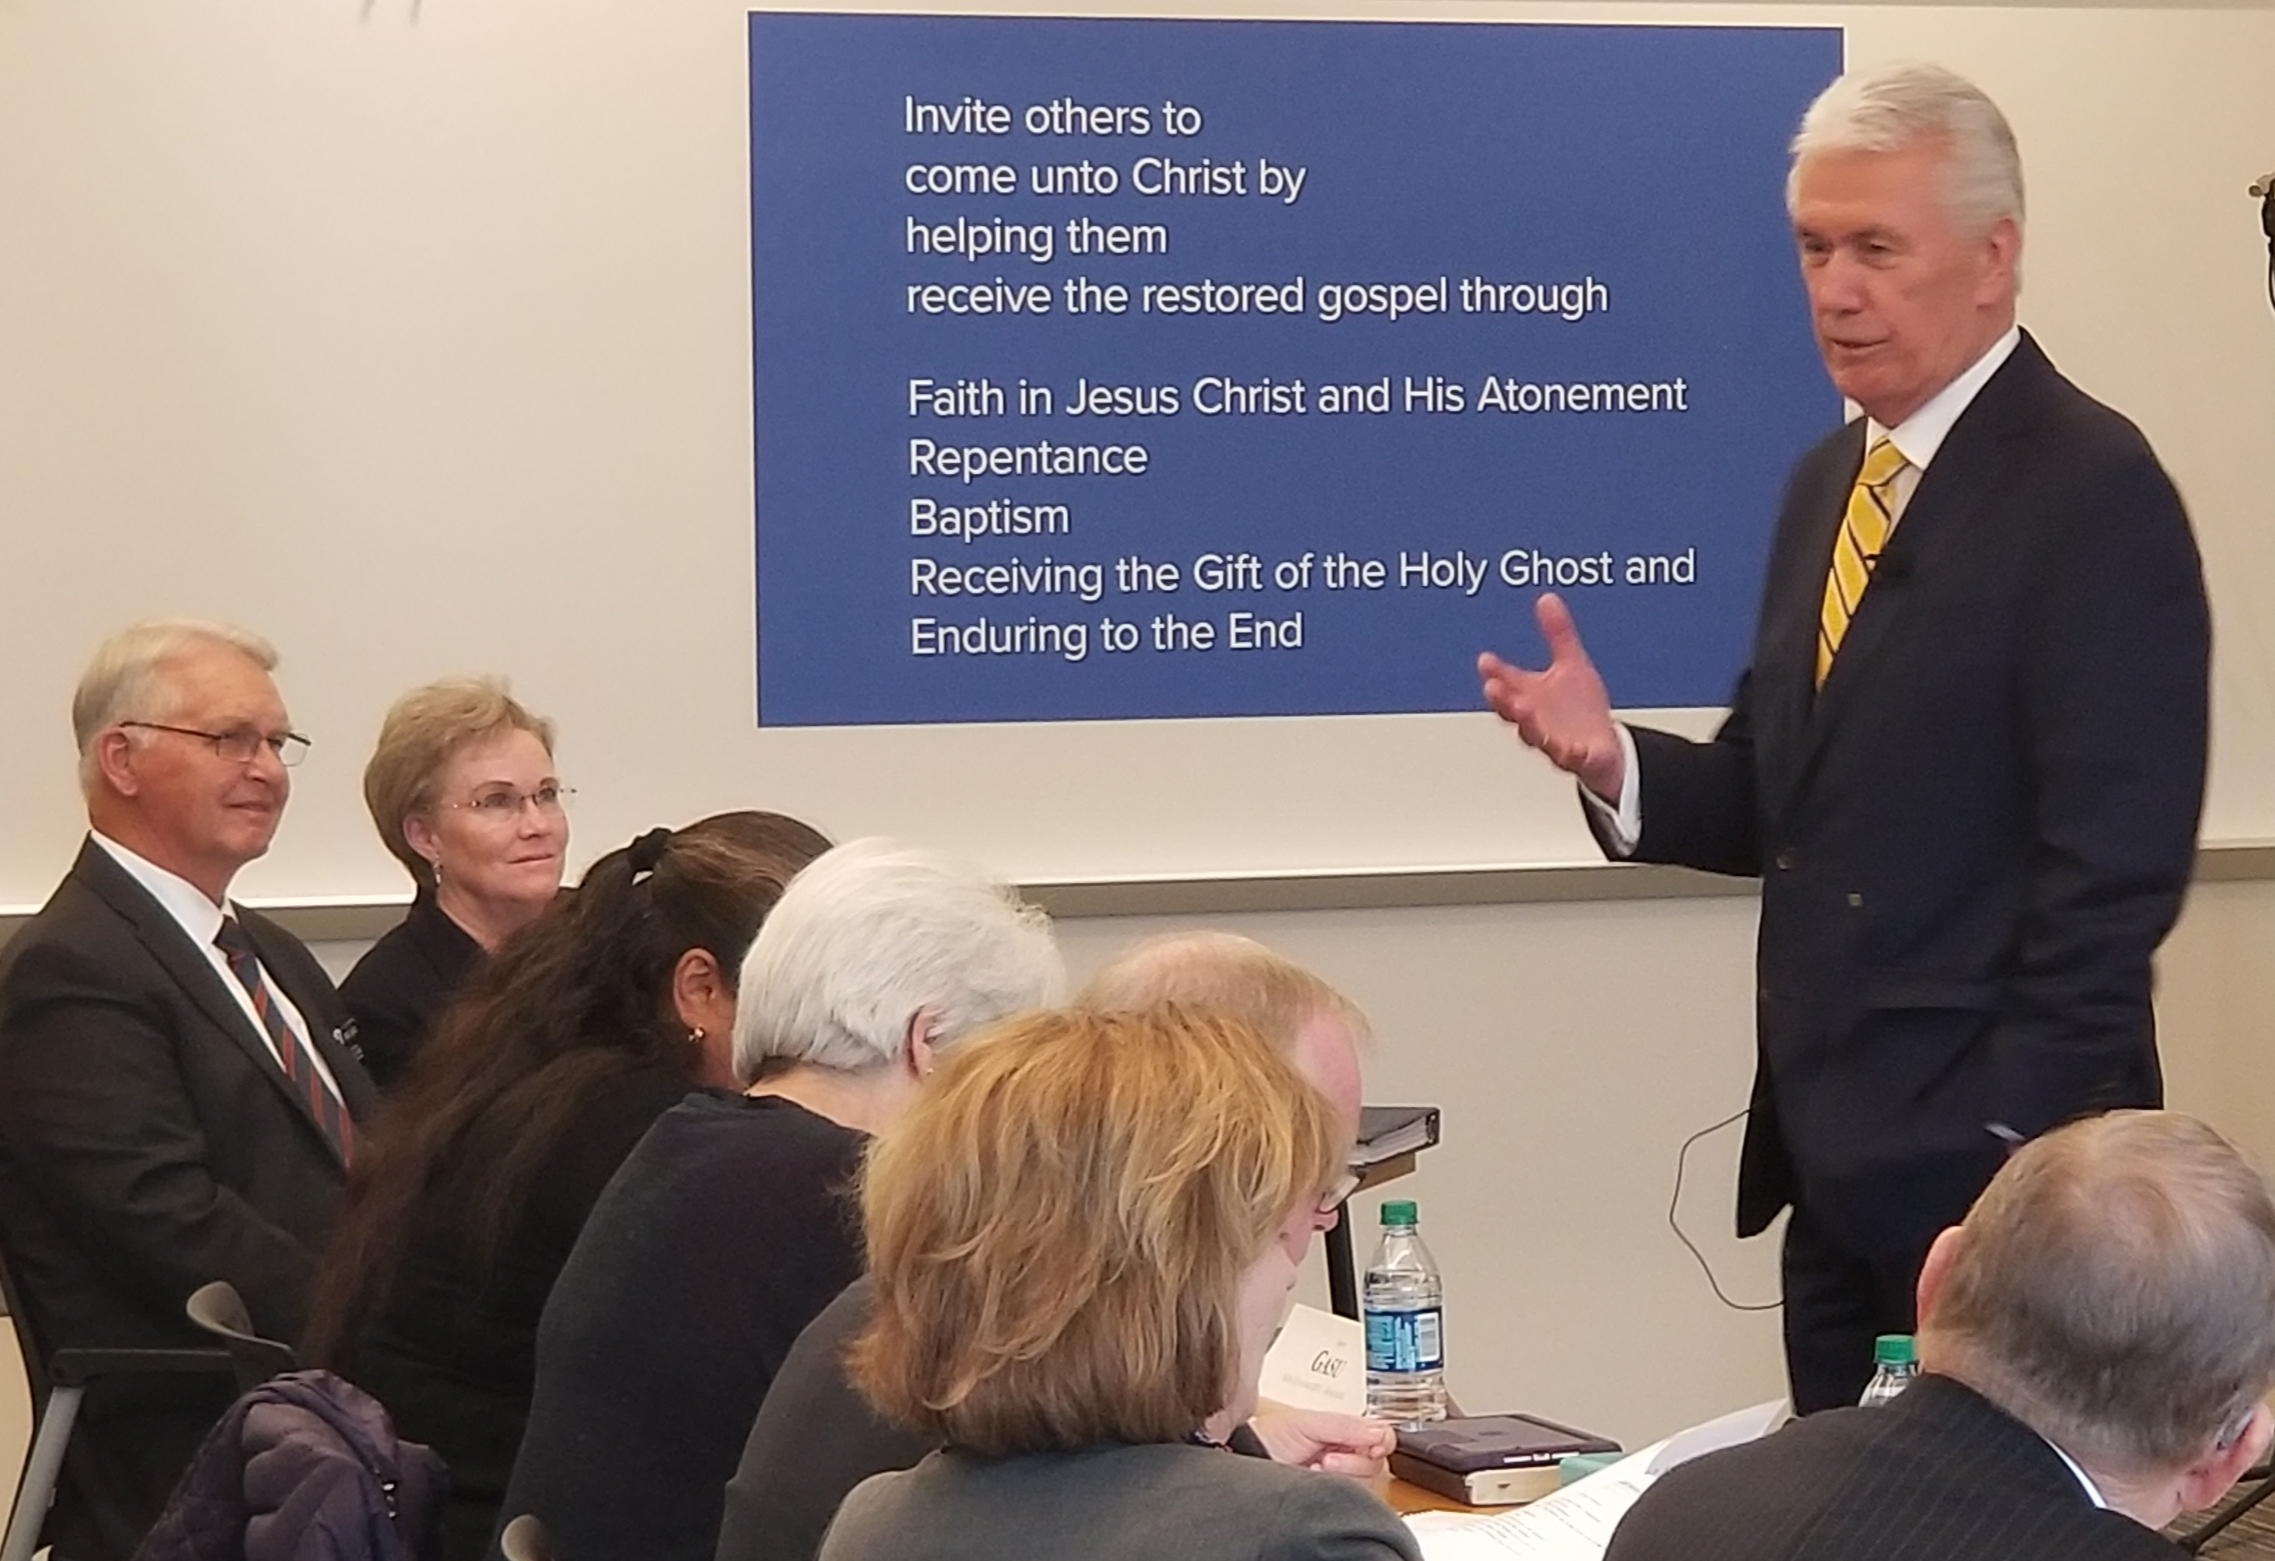 Elder Dieter F. Uchtdorf, a member of the Quorum of the Twelve Apostles and chairman of the Church's Missionary Executive Council, addresses MTC leadership couples and managers of operations during the 2019 MTC Leadership Seminar on Jan. 15 at the Provo Missionary Training Center.